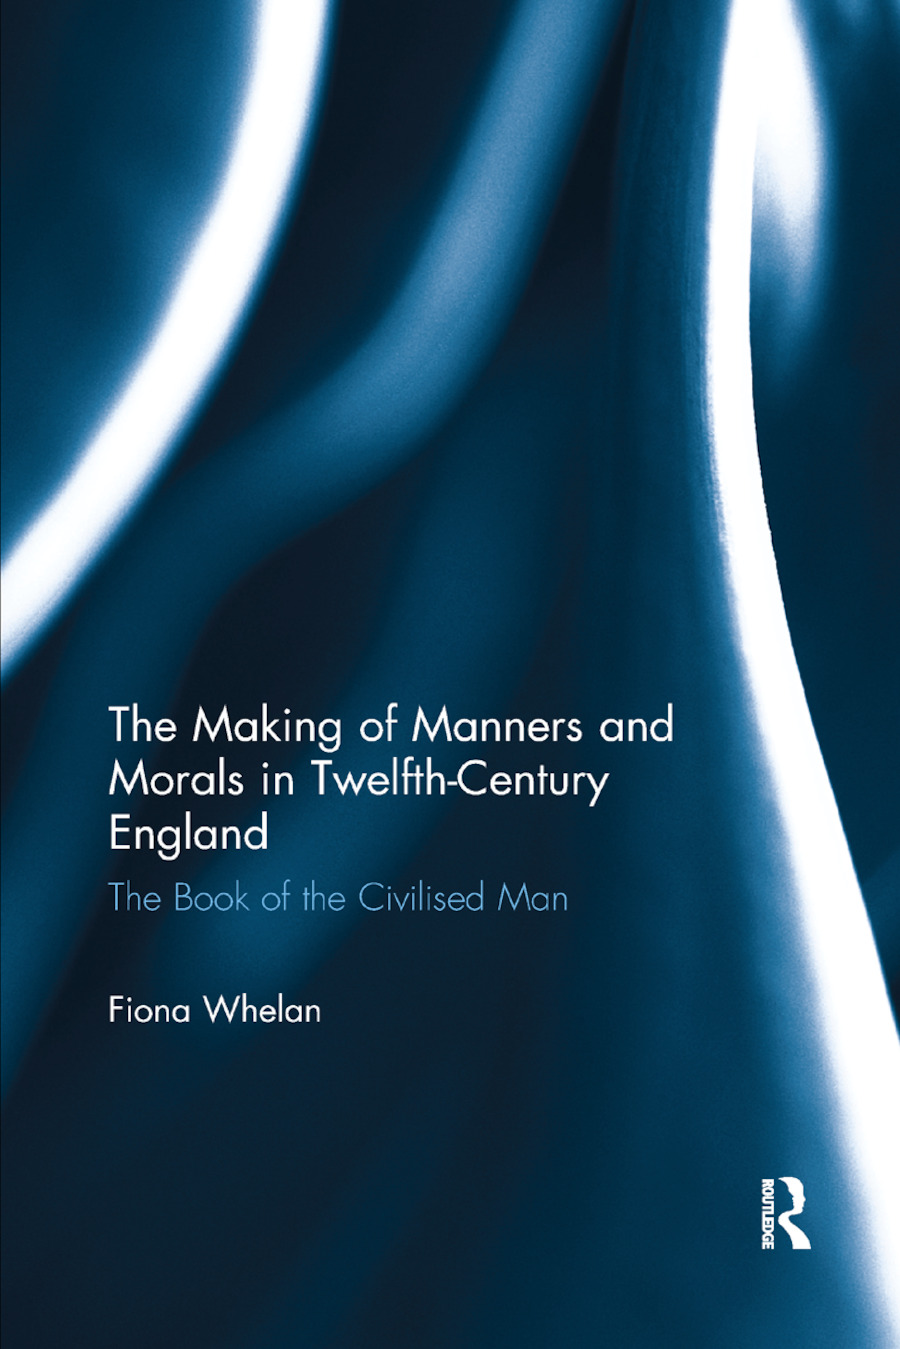 The Making of Manners and Morals in Twelfth-Century England: The Book of the Civilised Man book cover